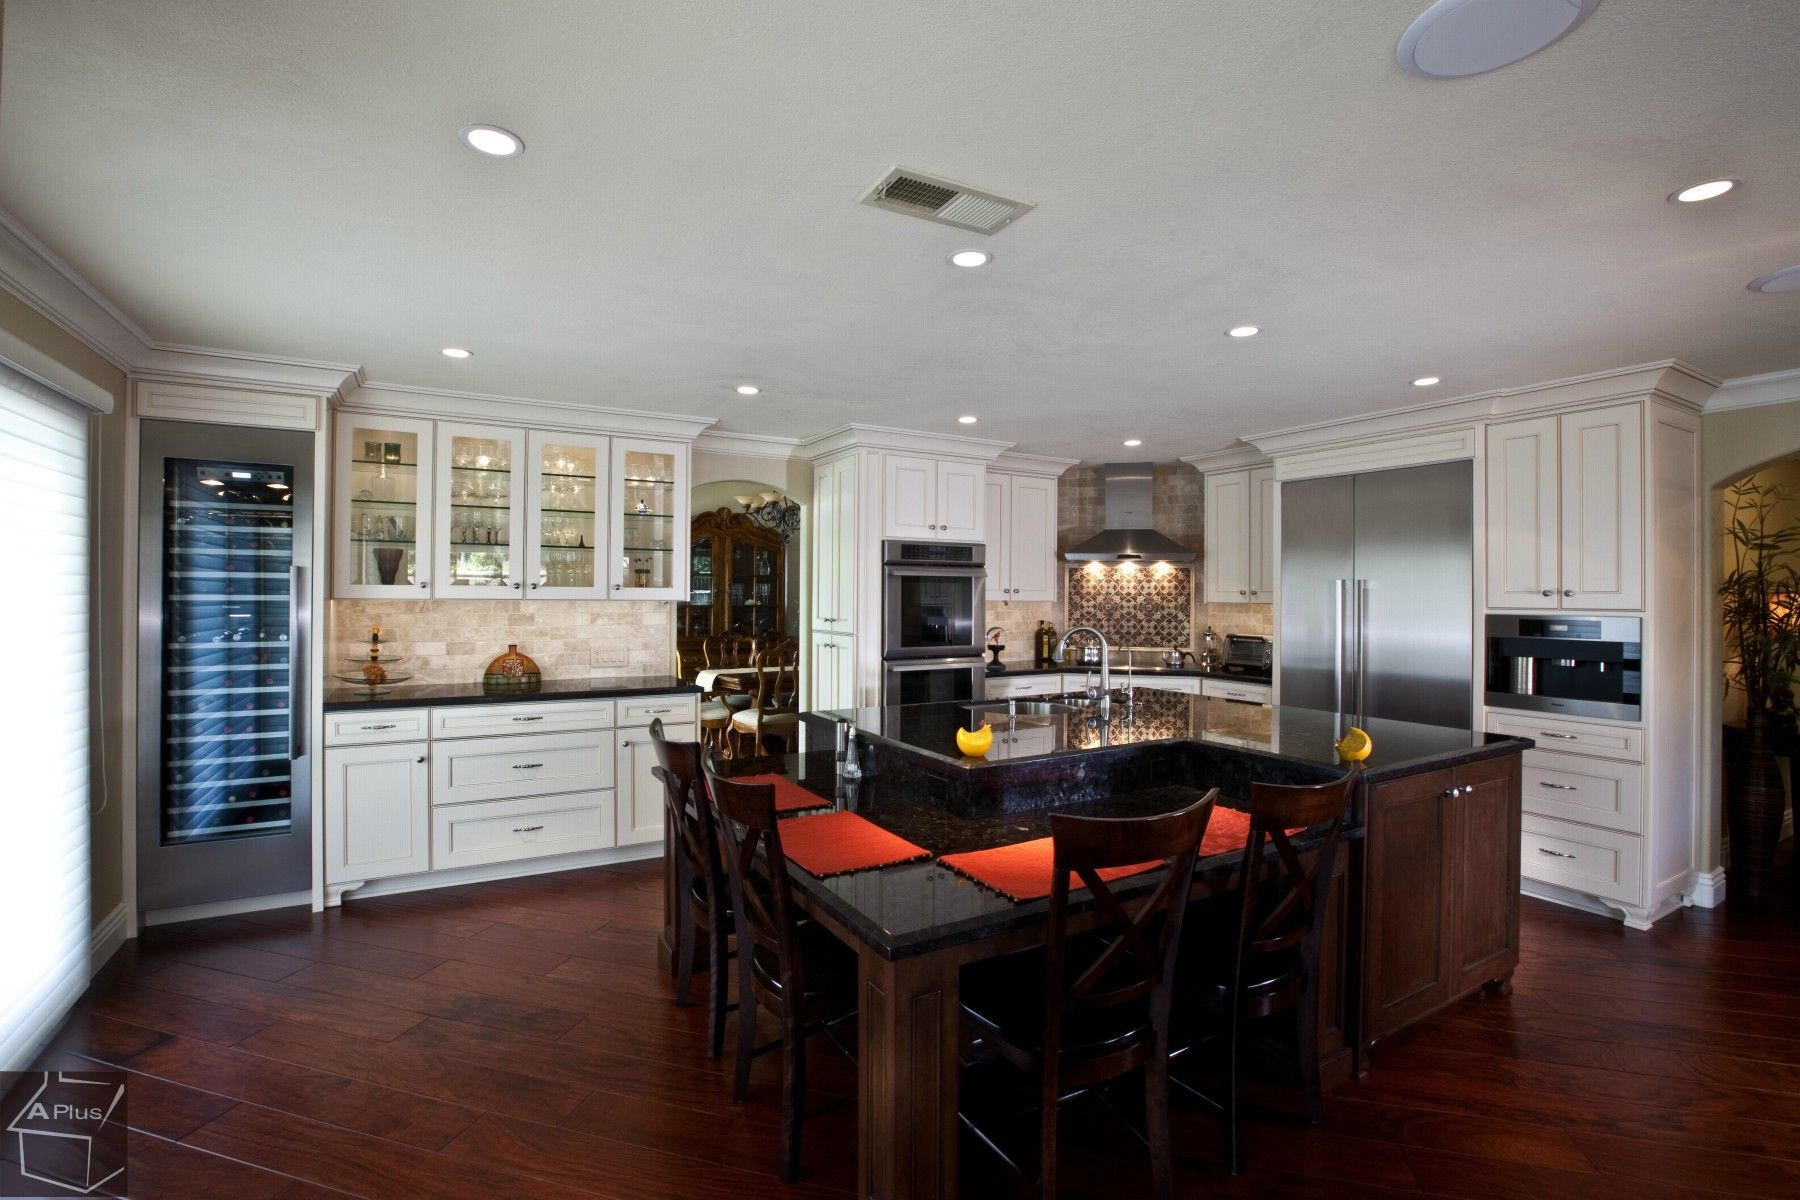 Best Laguna Niguel Kitchen Remodel With Custom Cabinets 400 x 300